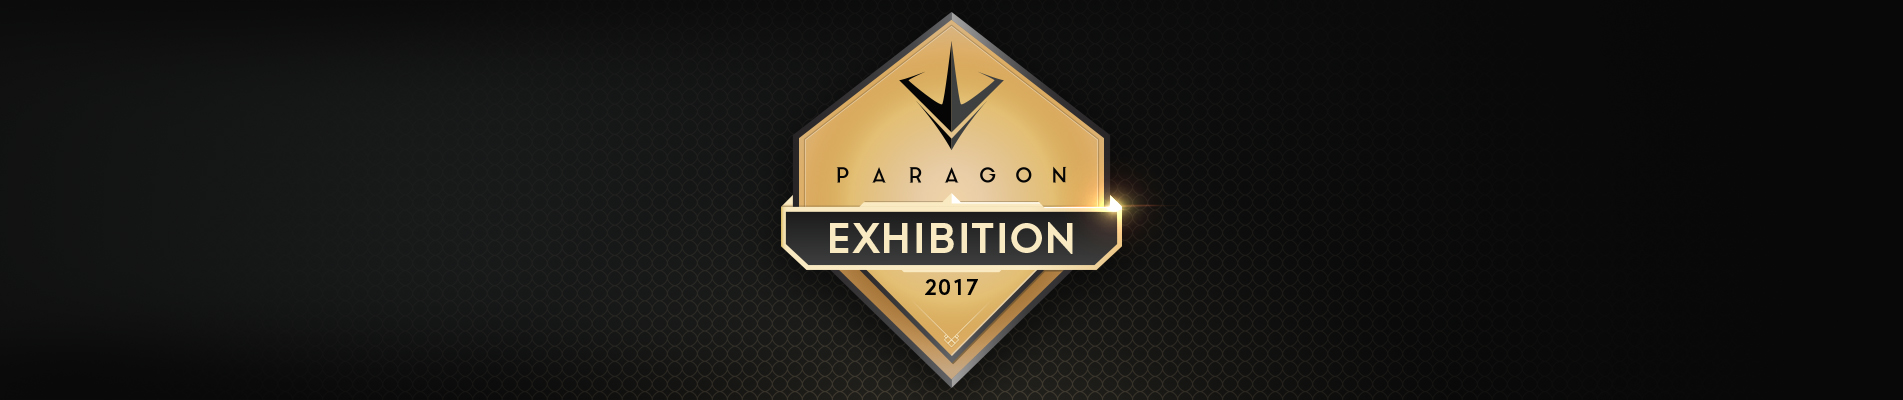 Paragon Exhibition 2017 - Group Stage, Competitive Banners, and more